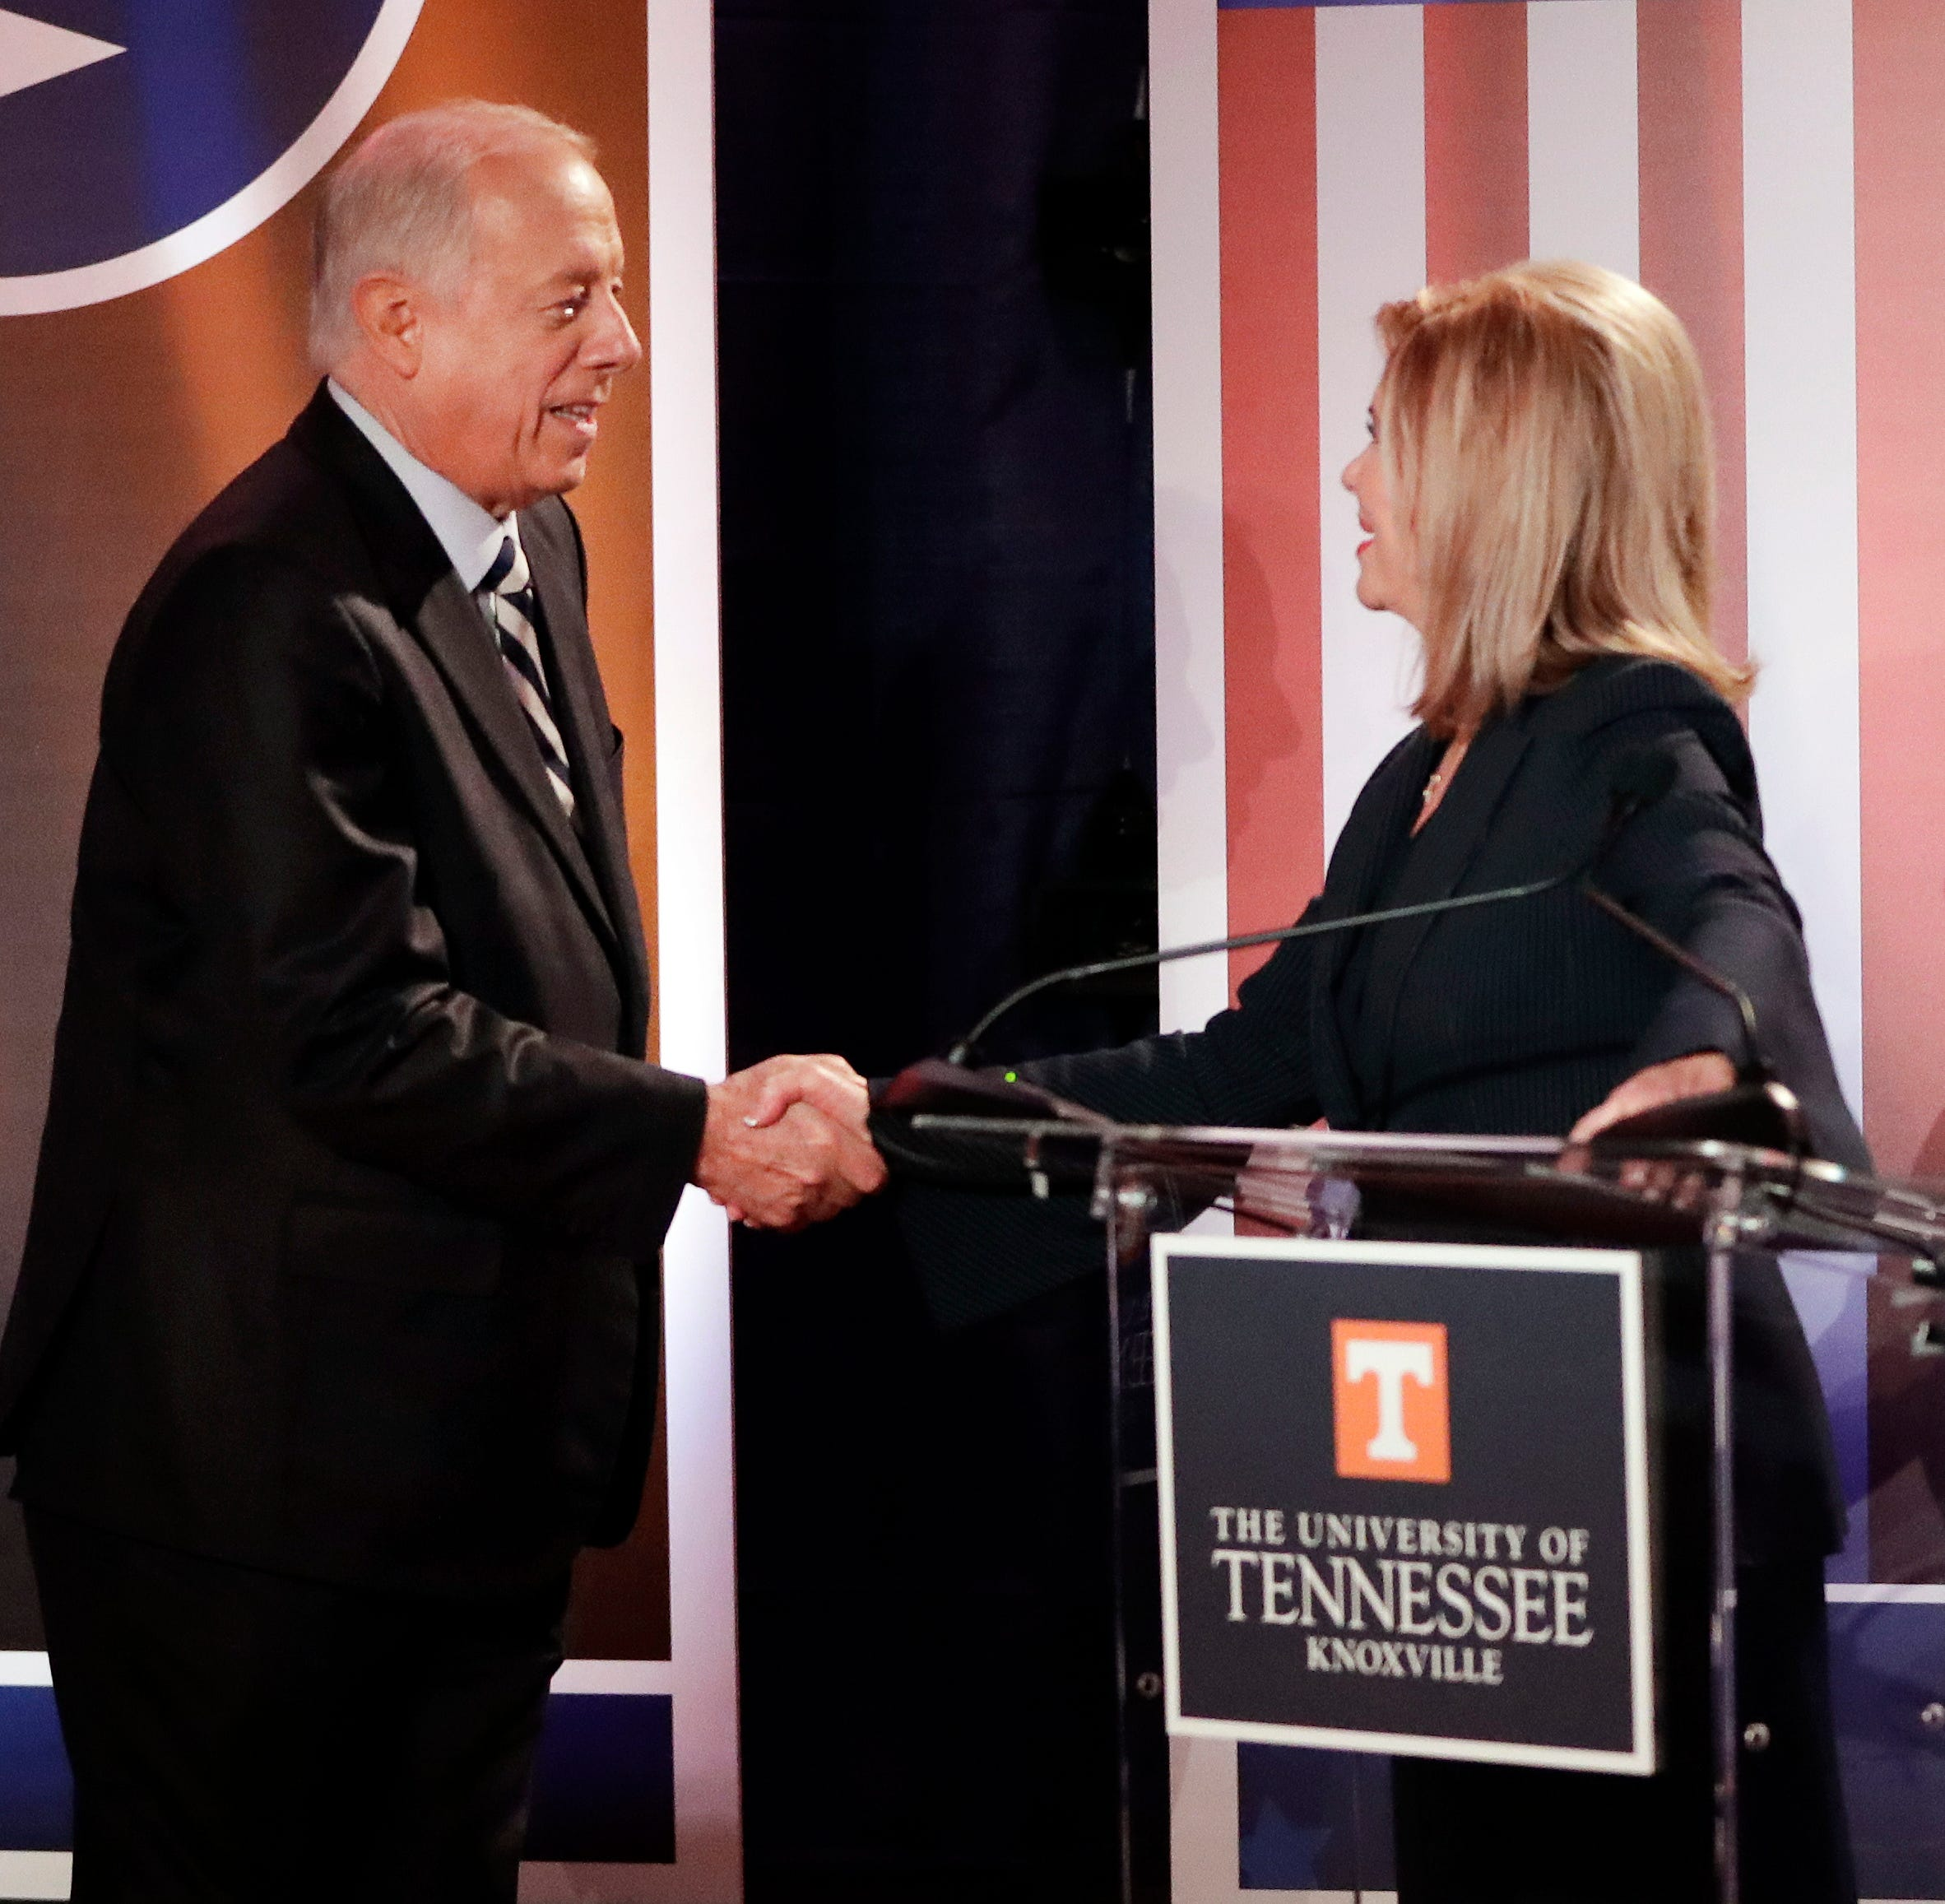 Victor Ashe: Blackburn-Bredesen winner may get only 51 percent